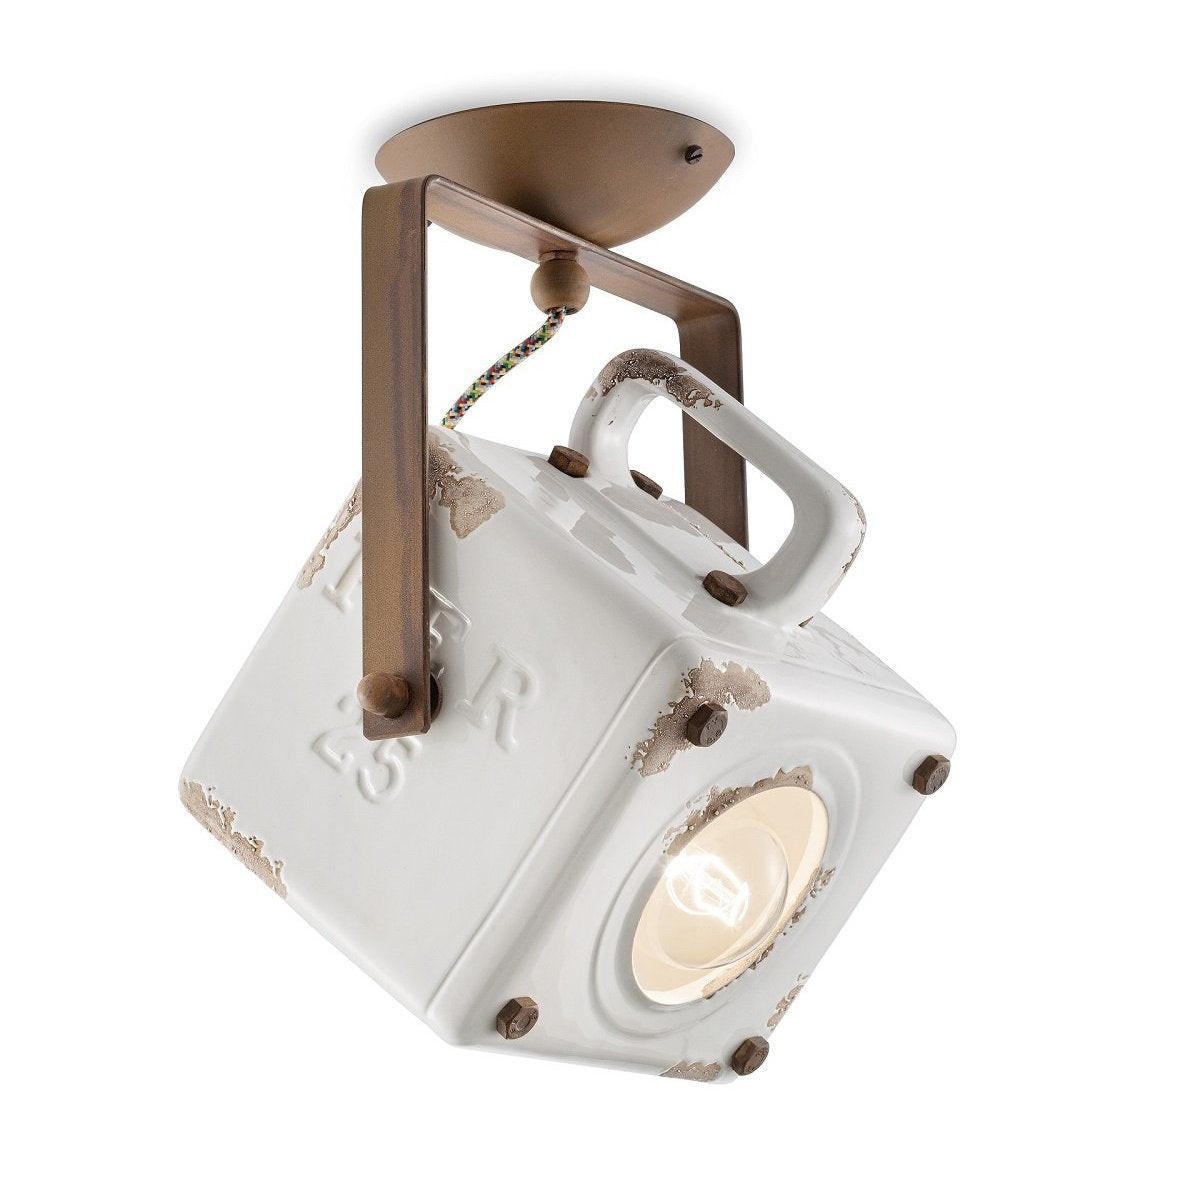 Ferroluce Industrial Ceiling Light C1653 | touchGOODS